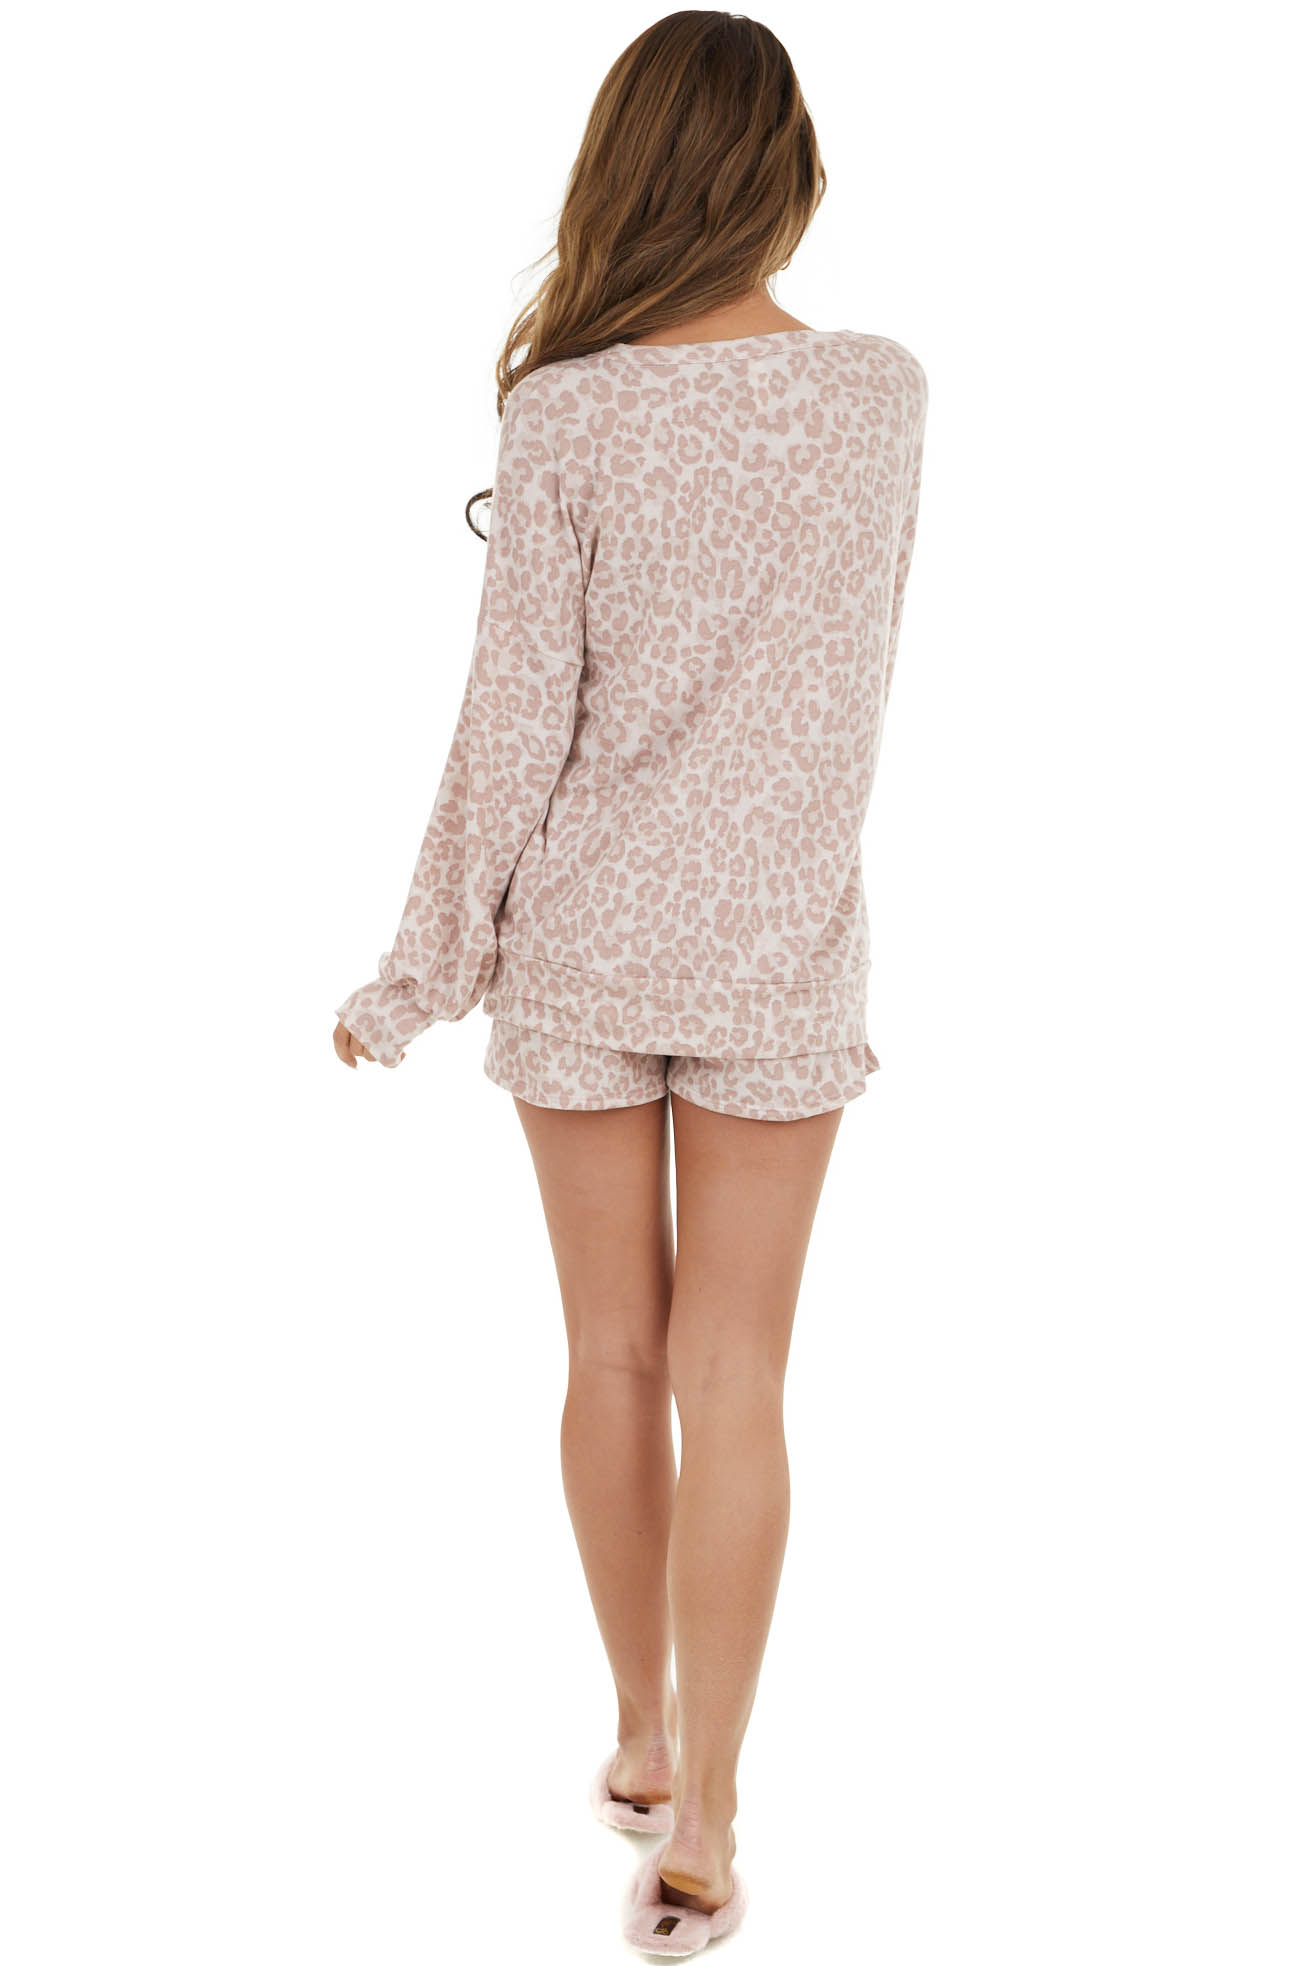 Dusty Blush Leopard Print Shorts and Loungewear Top Set